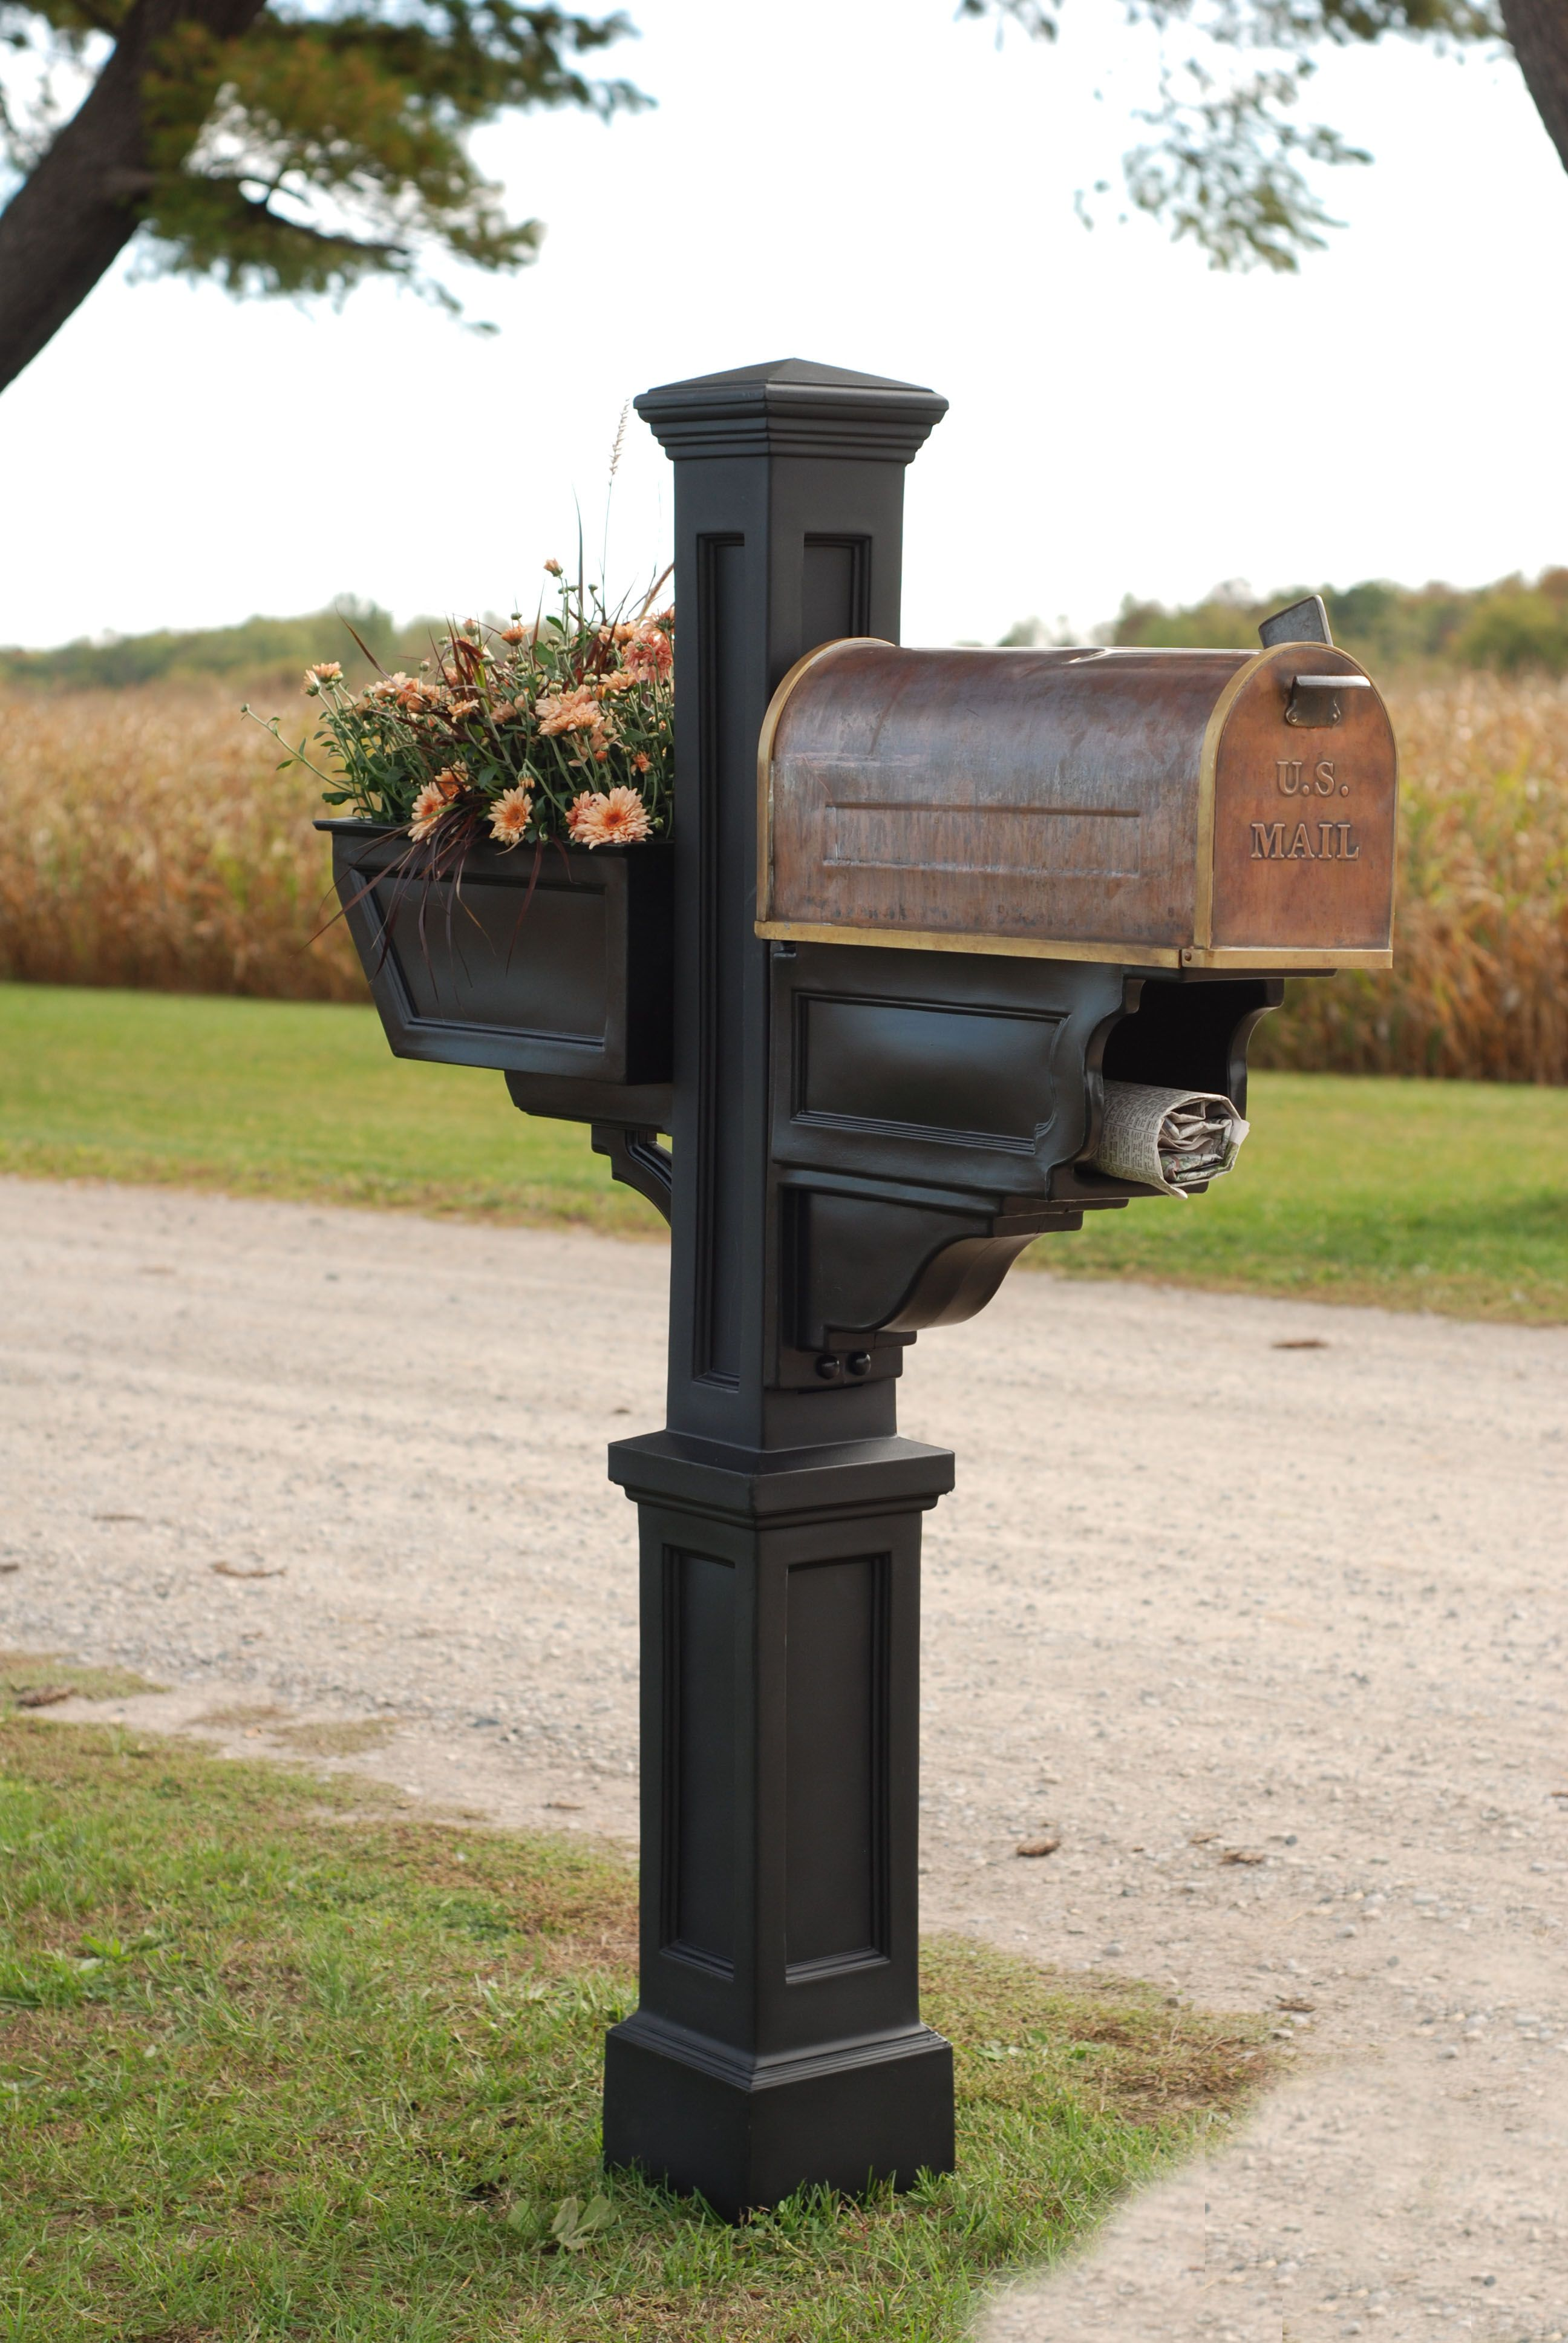 Home Improvement In 2020 Wood Post Mailbox Post Building A New Home